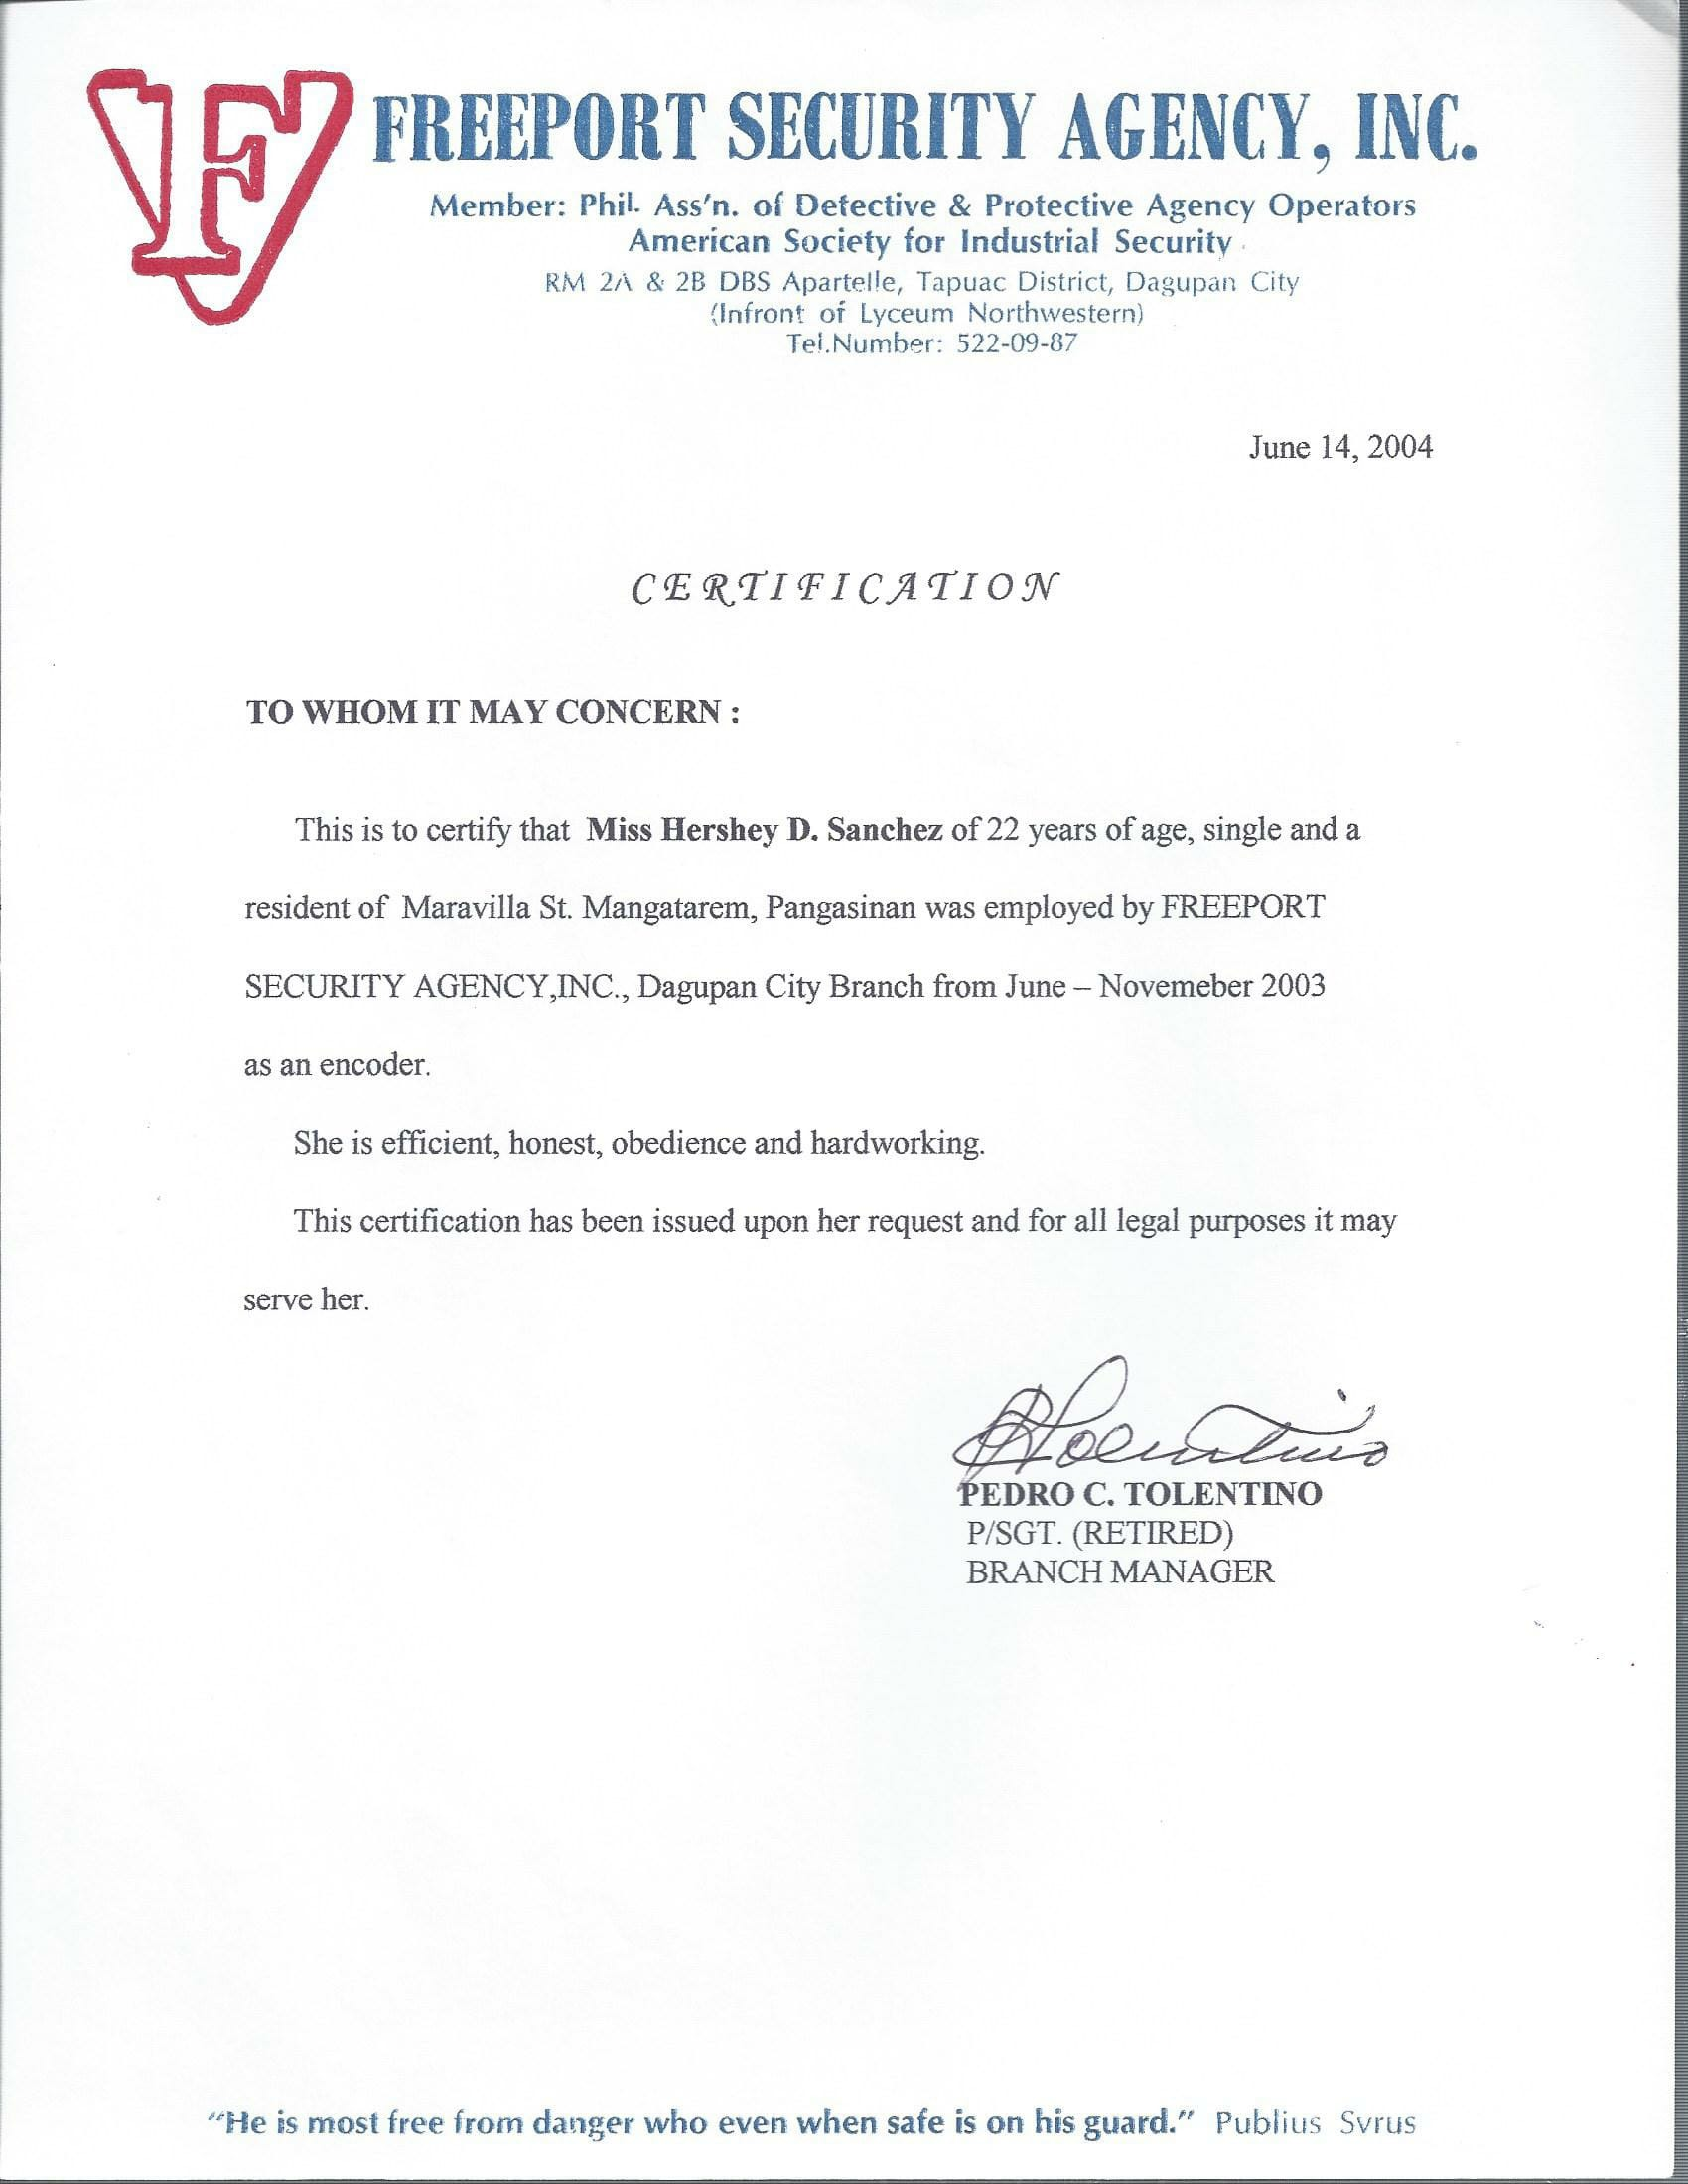 Request for certificate of employment employment letter of hershey sanchez baytcom 7501162 1481628670 85 hershey sanchez request for certificate of employment request for certificate of employment yadclub Choice Image